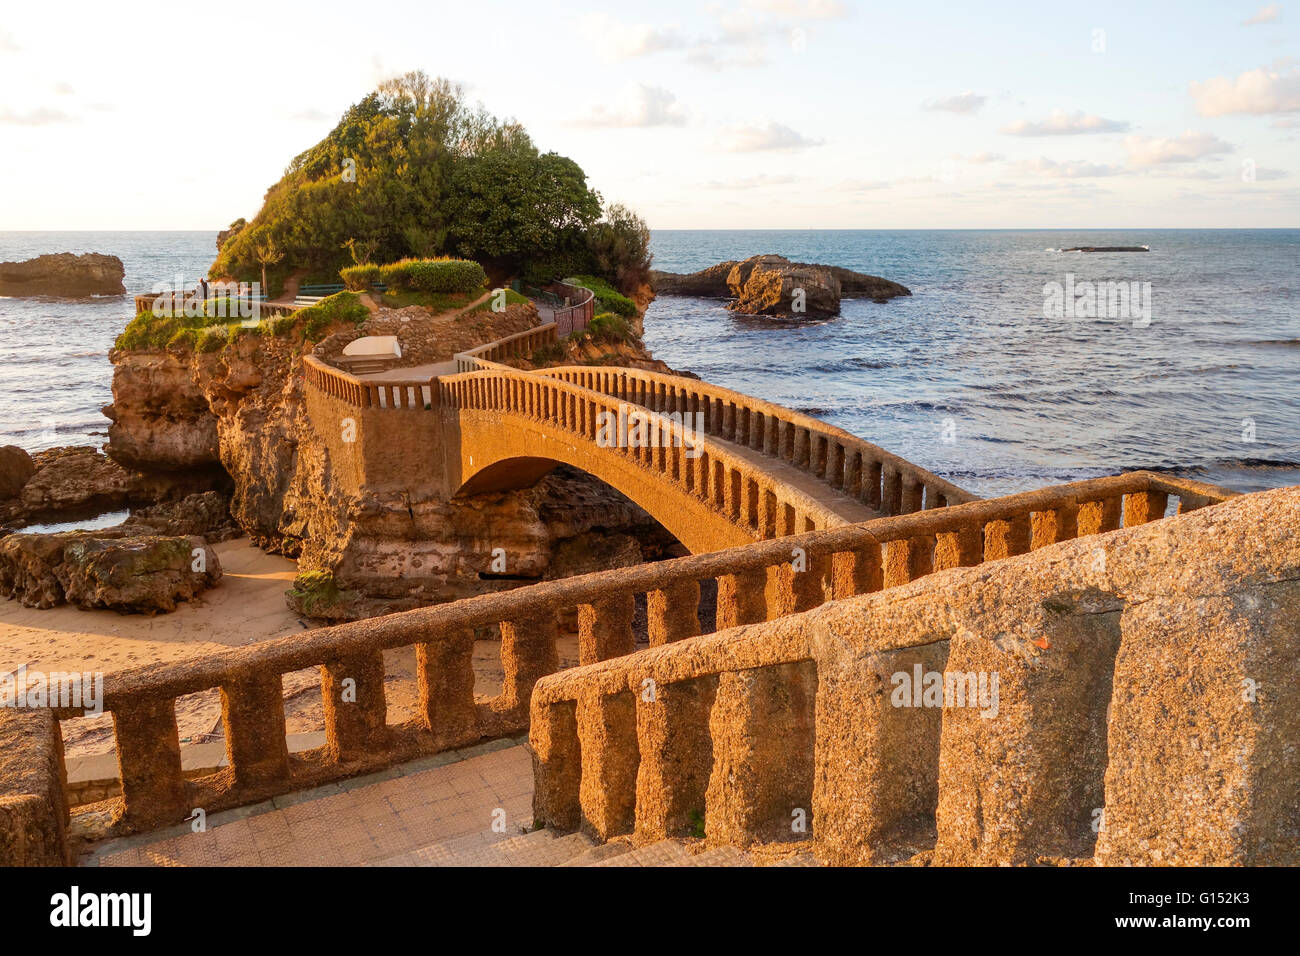 arch footbridges on the beach le rocher du basta grande plage stock photo royalty free image. Black Bedroom Furniture Sets. Home Design Ideas